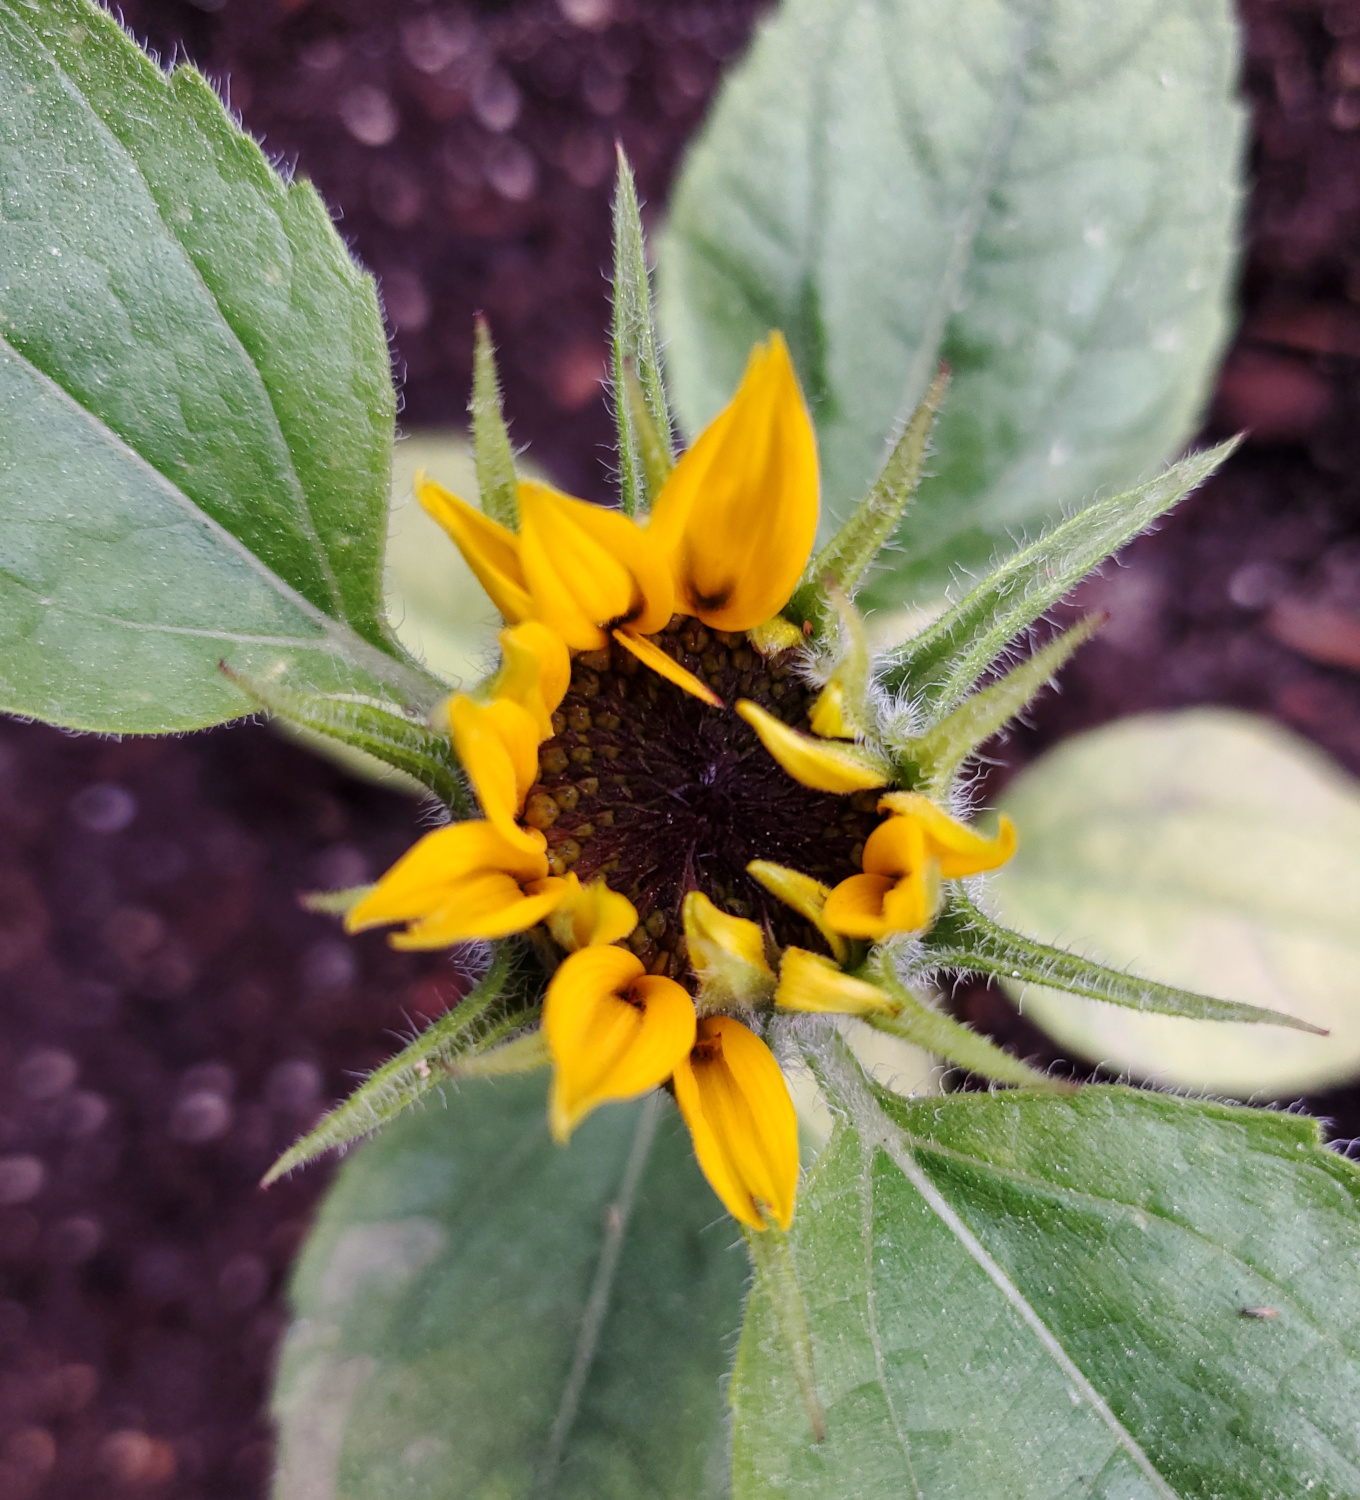 The sunflower is beginning to spread its flower, possibly a little early in spring